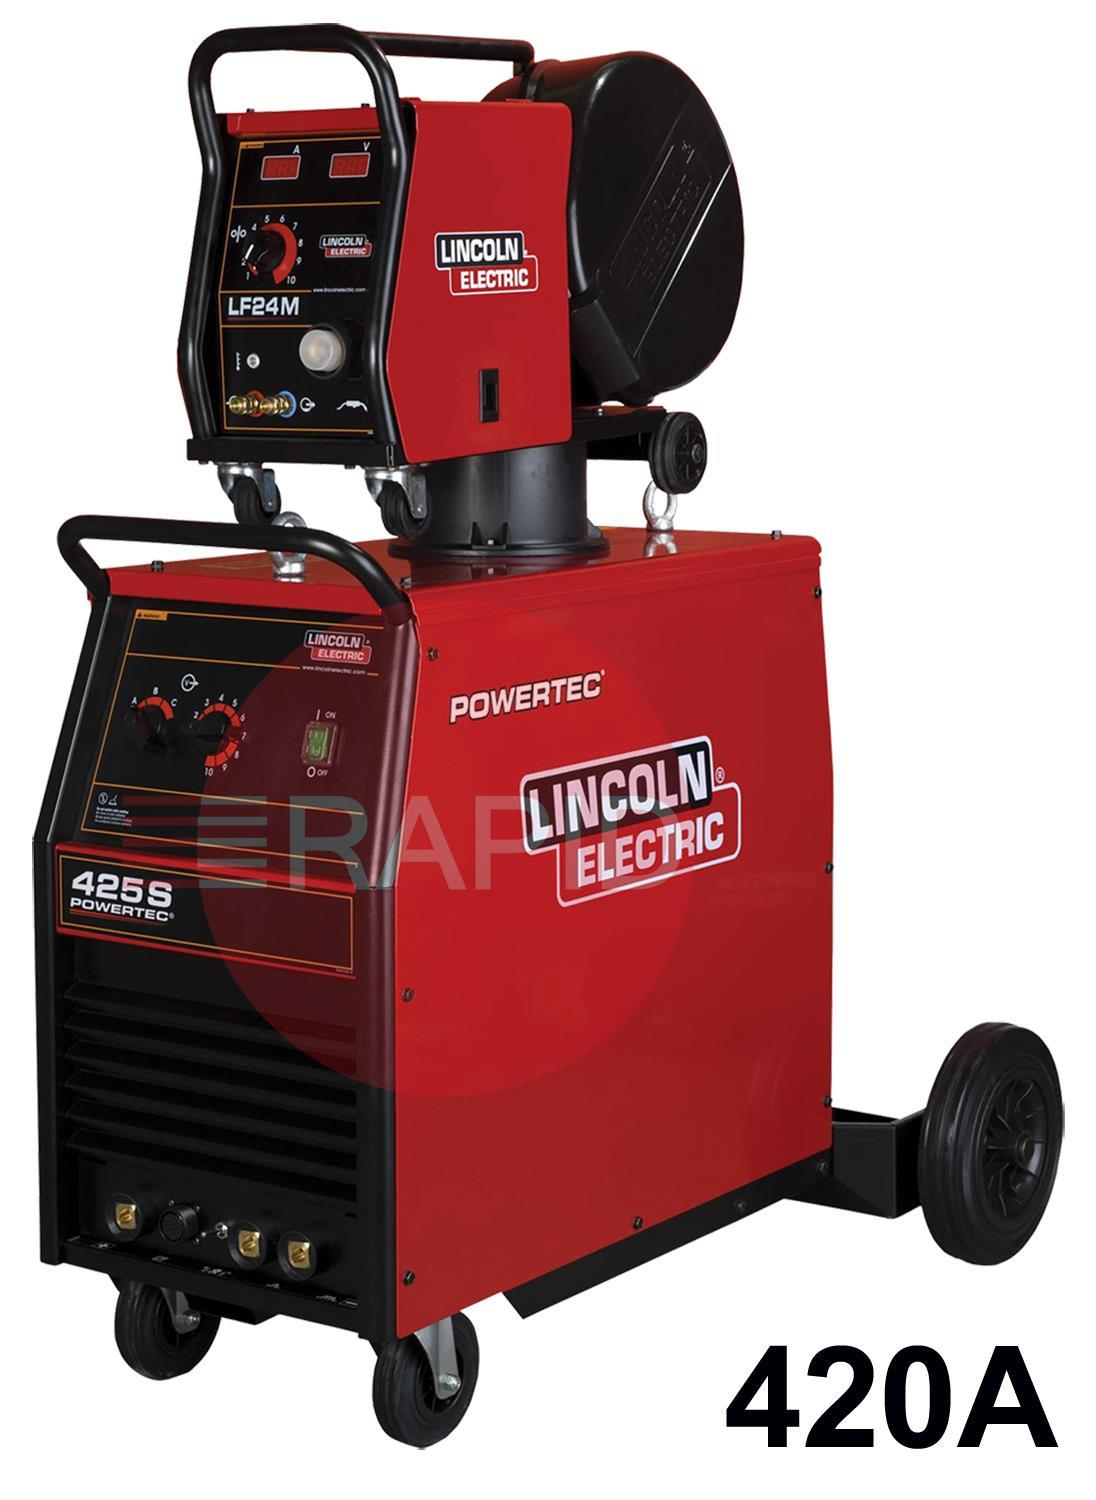 K14062-X-2X-RWP  Lincoln Powertec 425S Mig Welder, 5m Interconnection  - Ready to Weld Package